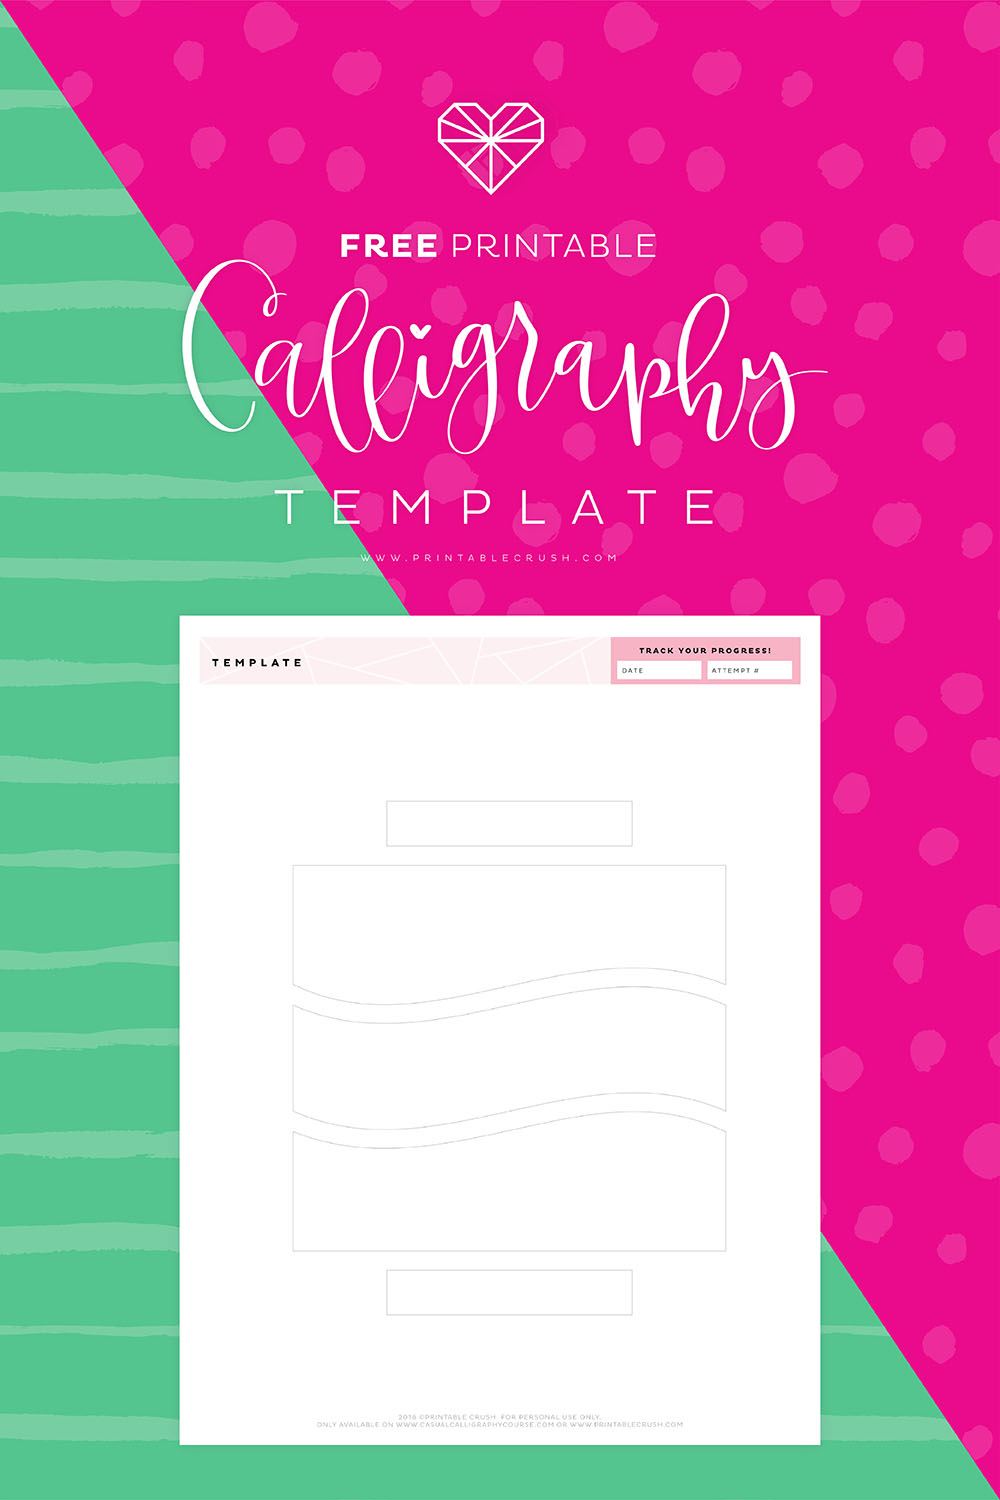 Get those calligraphy layout ideas rolling with this FREE Printable Calligraphy Template! You can use this with calligraphy pens or brush pens. #casualcalligraphy #calligraphytemplate #casualcalligraphycourse #brushlettering #calligraphy #letteringideas #letteringworksheets #calligraphyworksheets #moderncalligraphy via @printablecrush